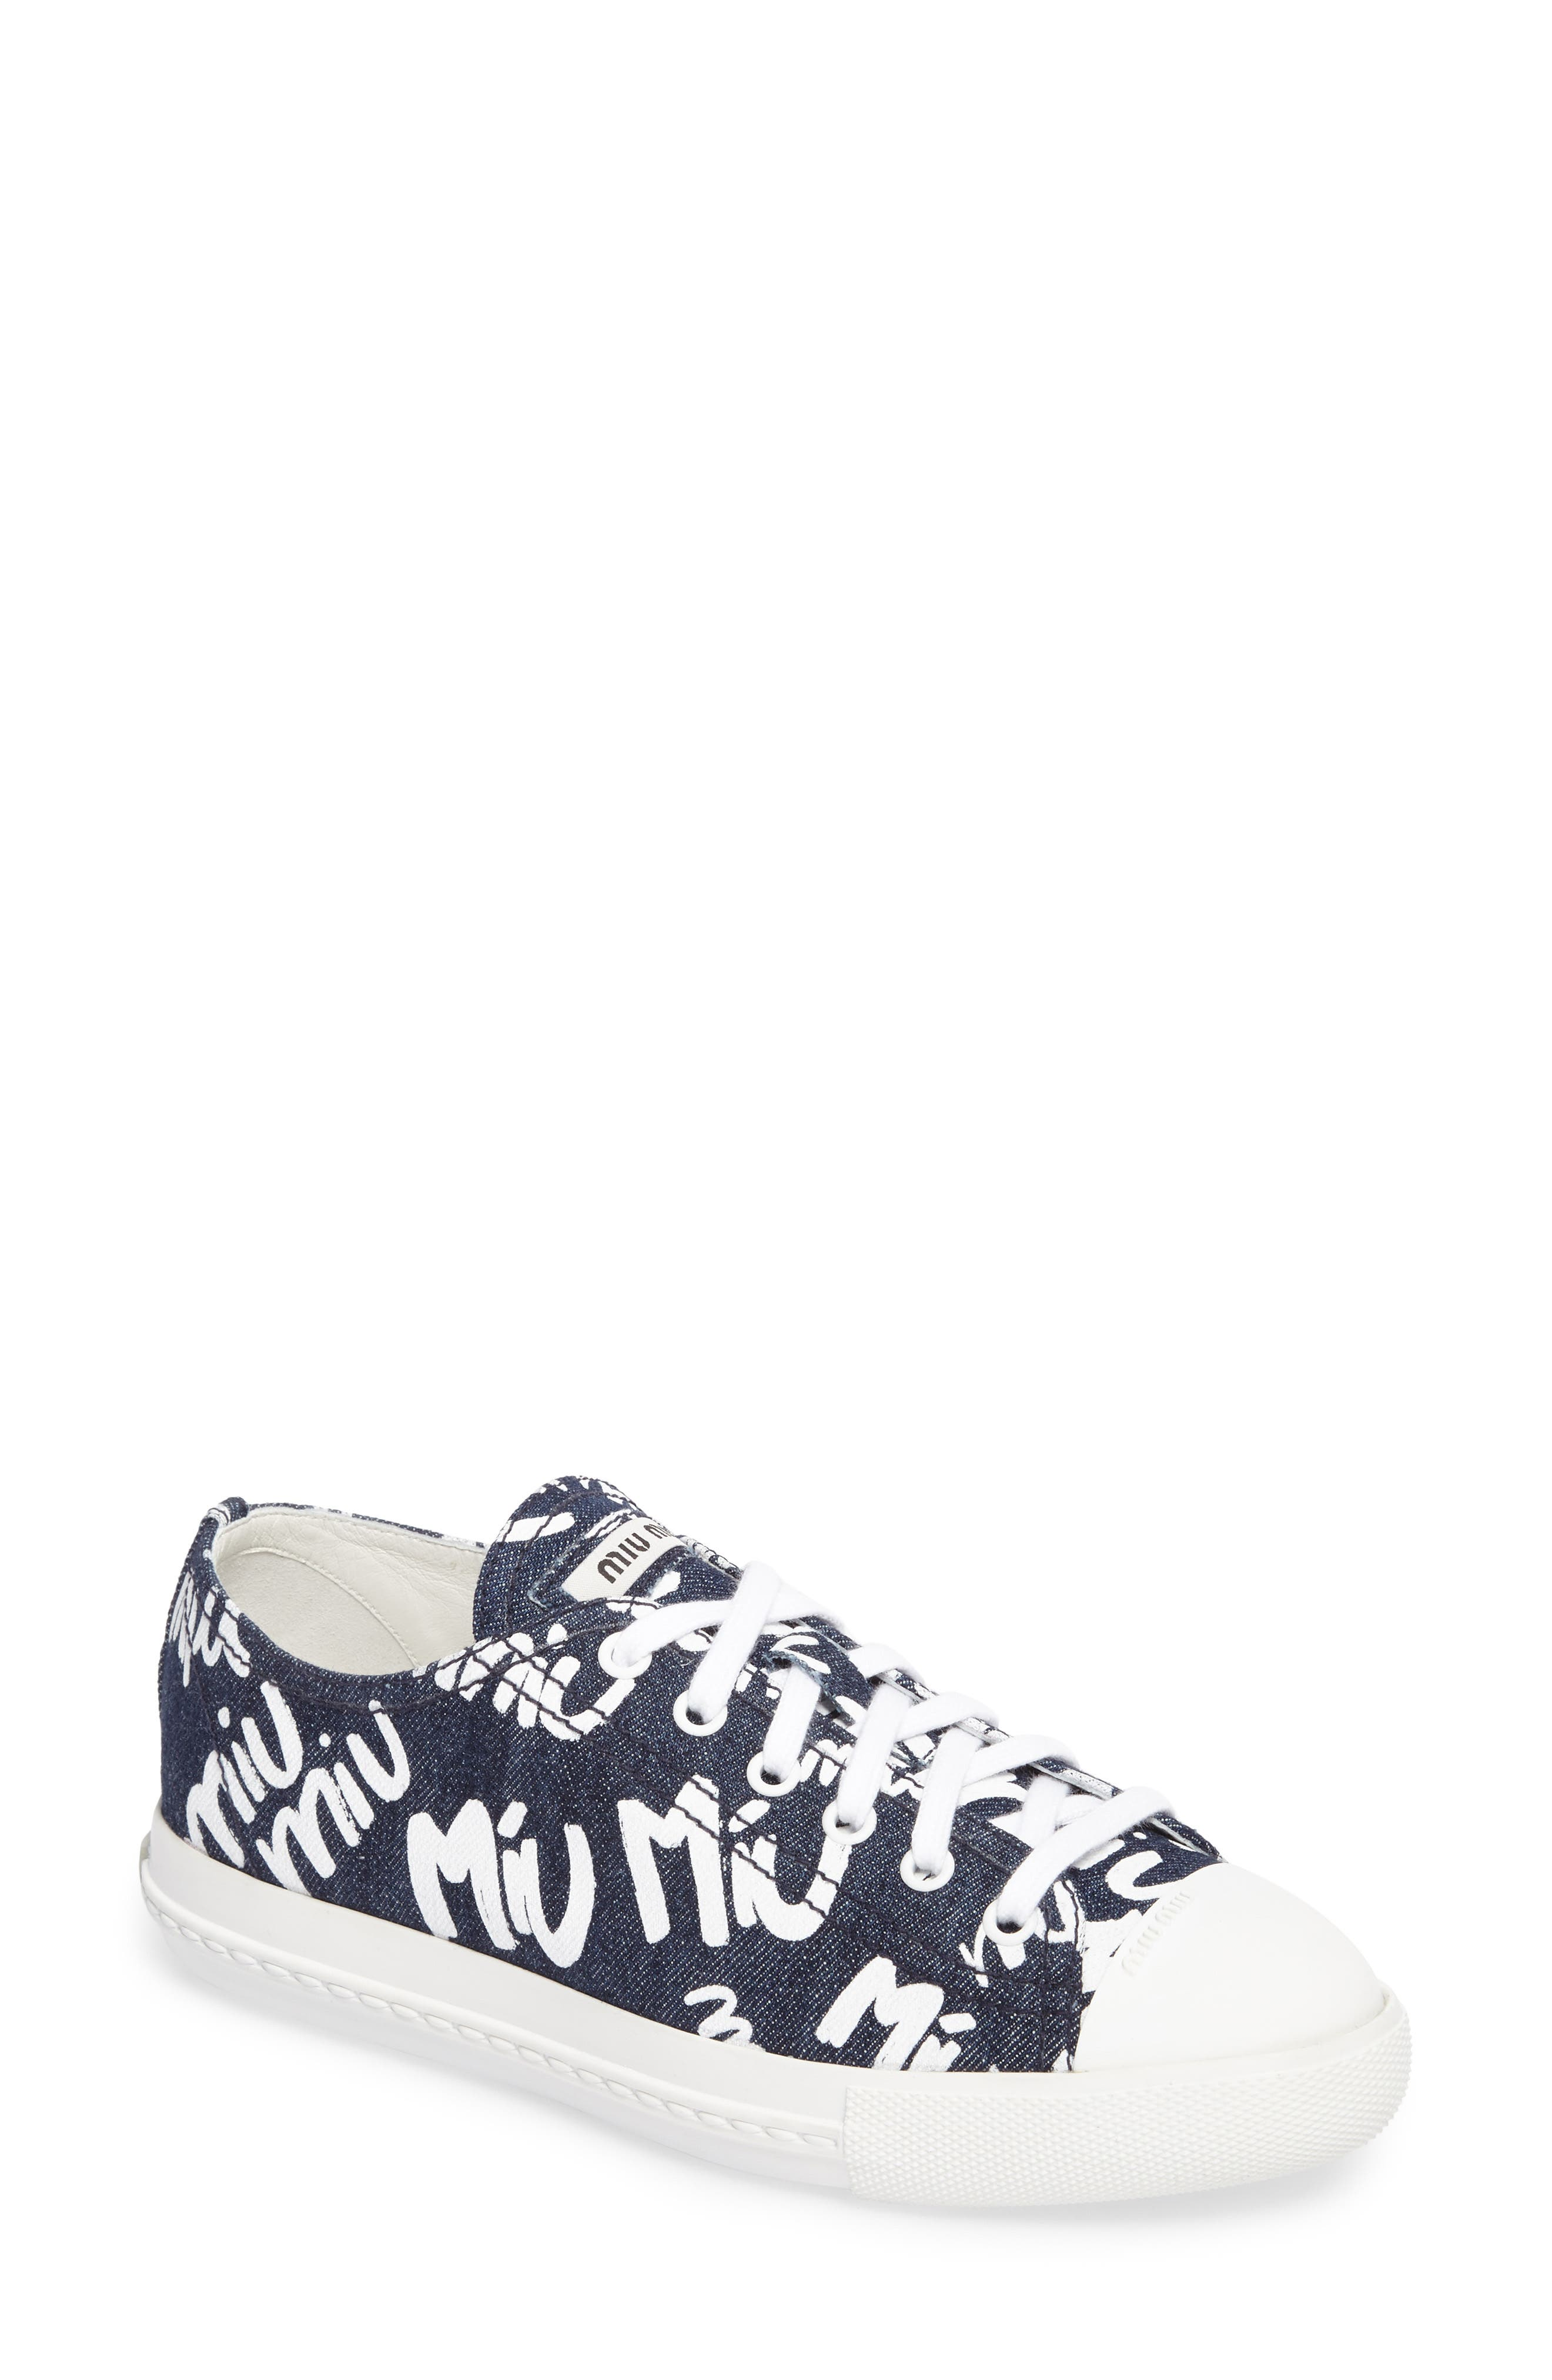 Miu Miu Logo Low Top Sneaker (Women)